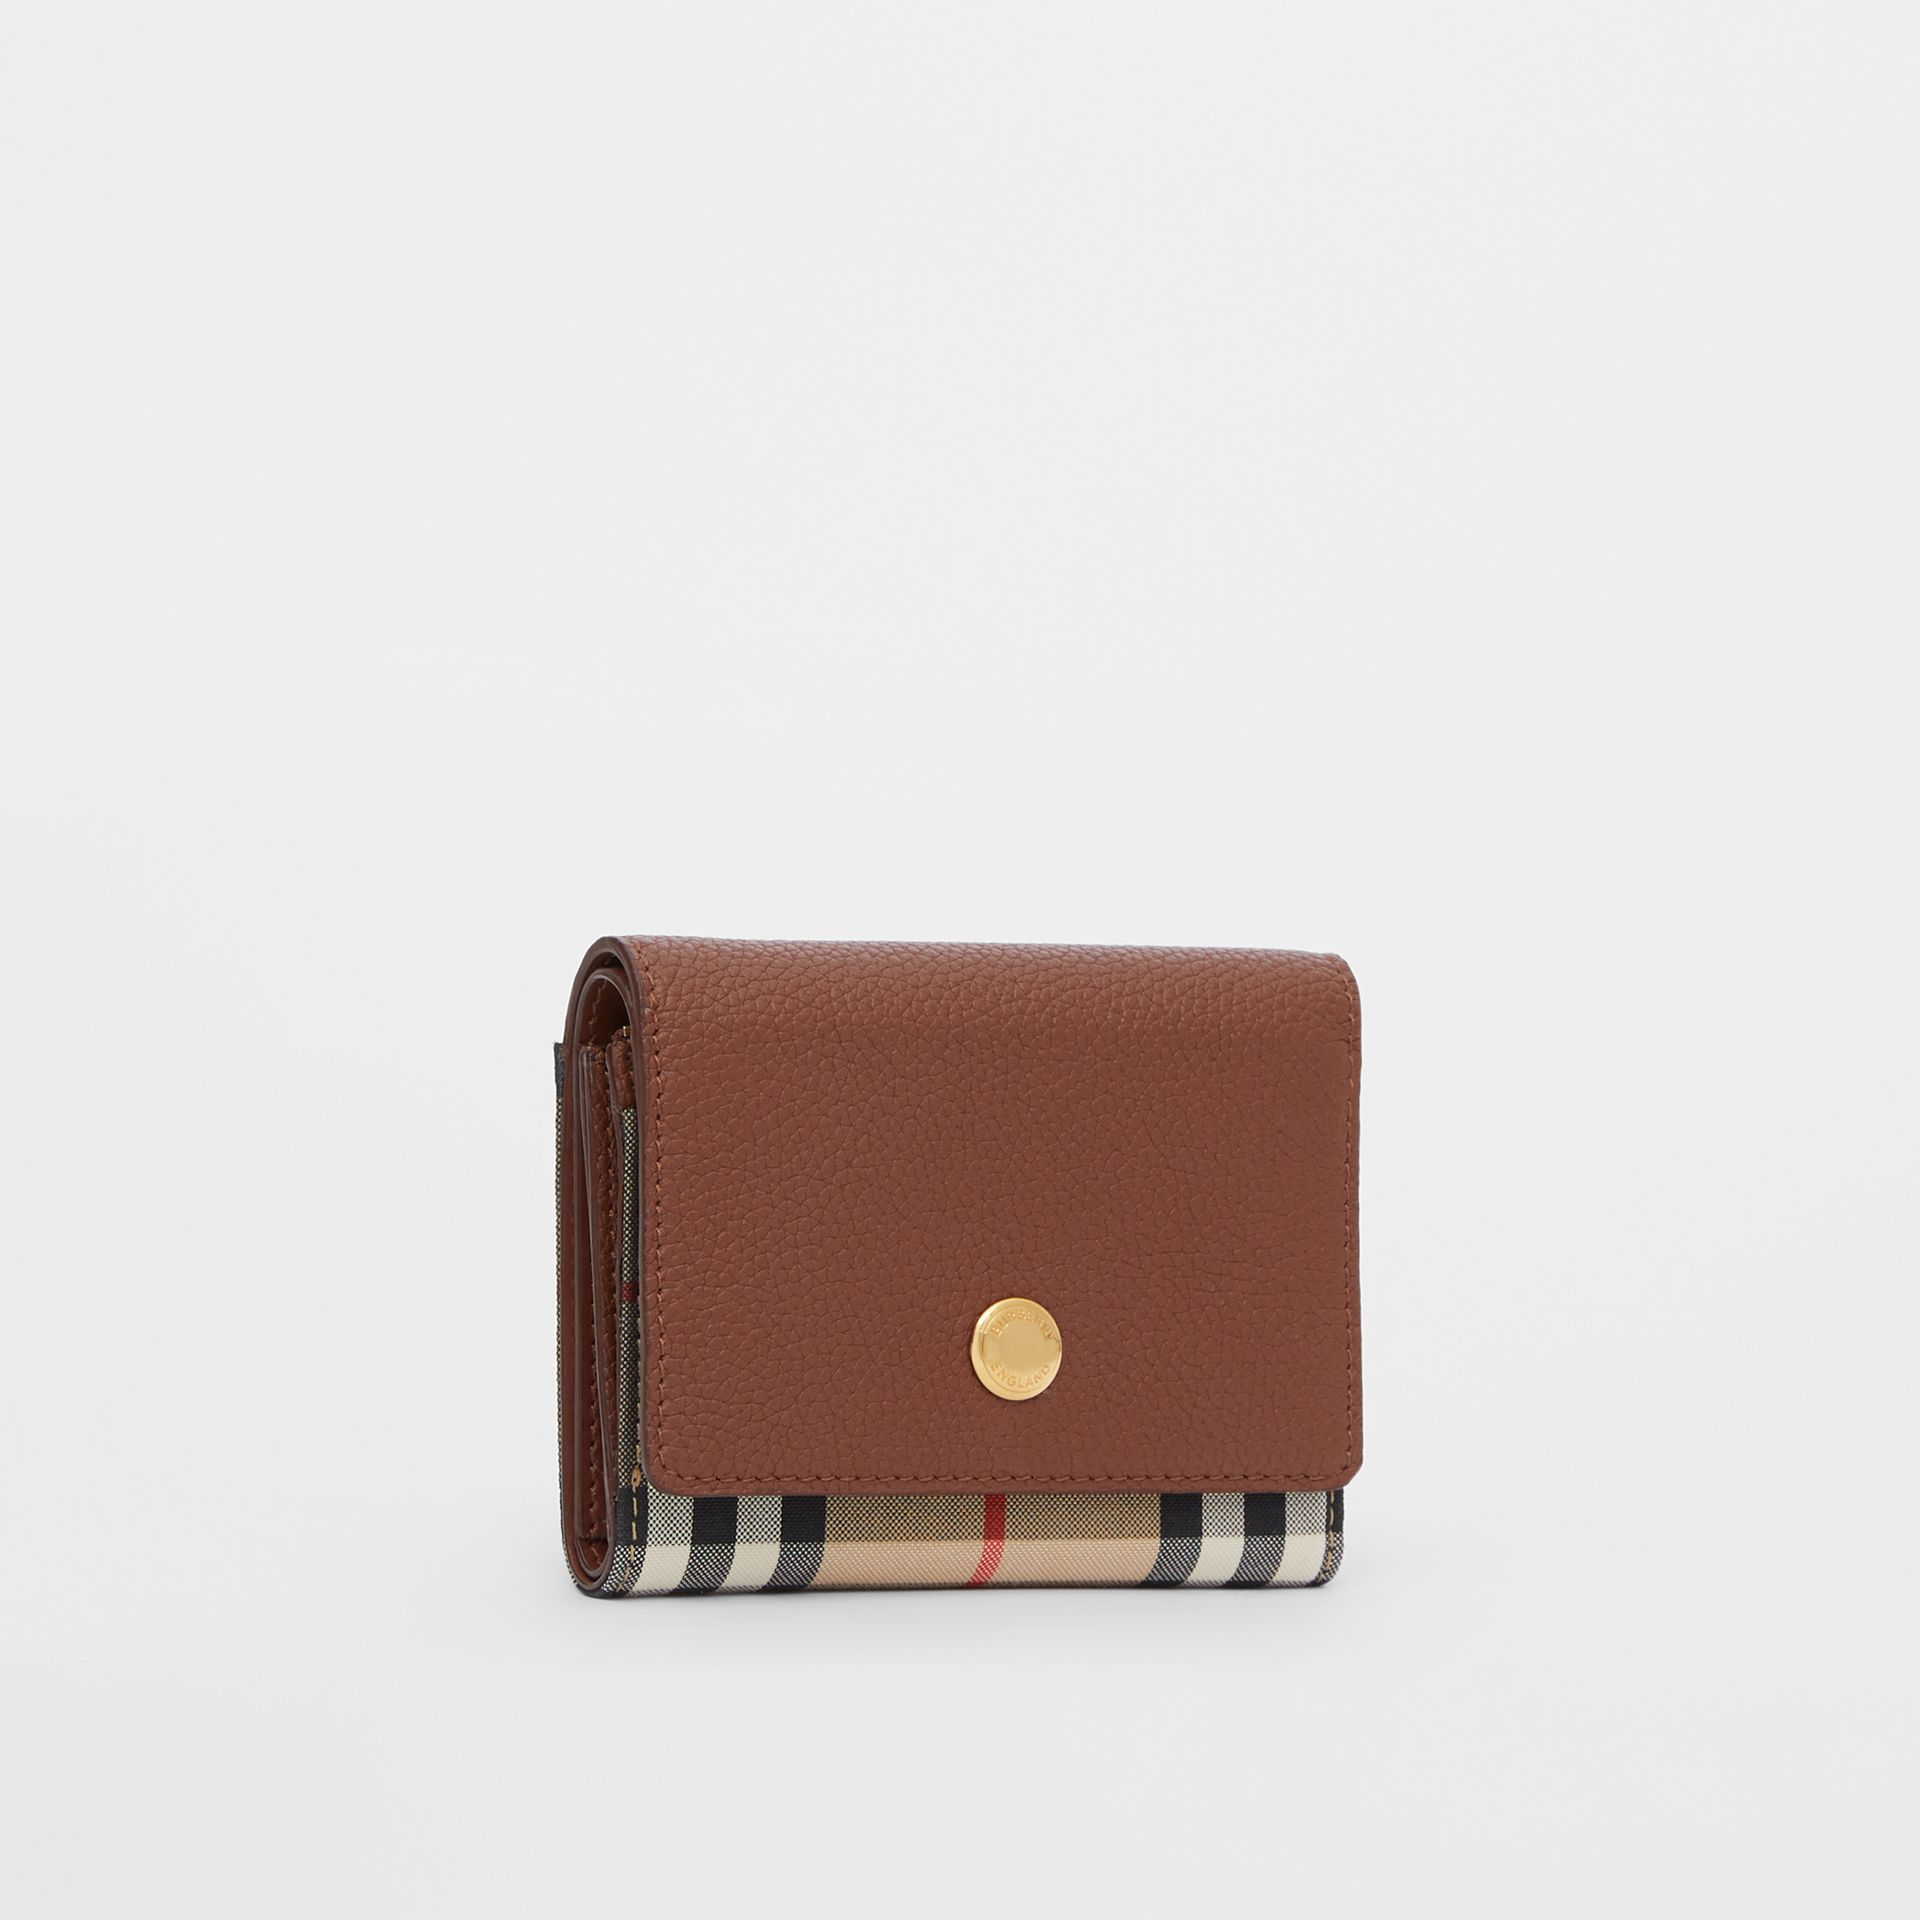 Small Vintage Check and Leather Folding Wallet in Tan - Women | Burberry - gallery image 3